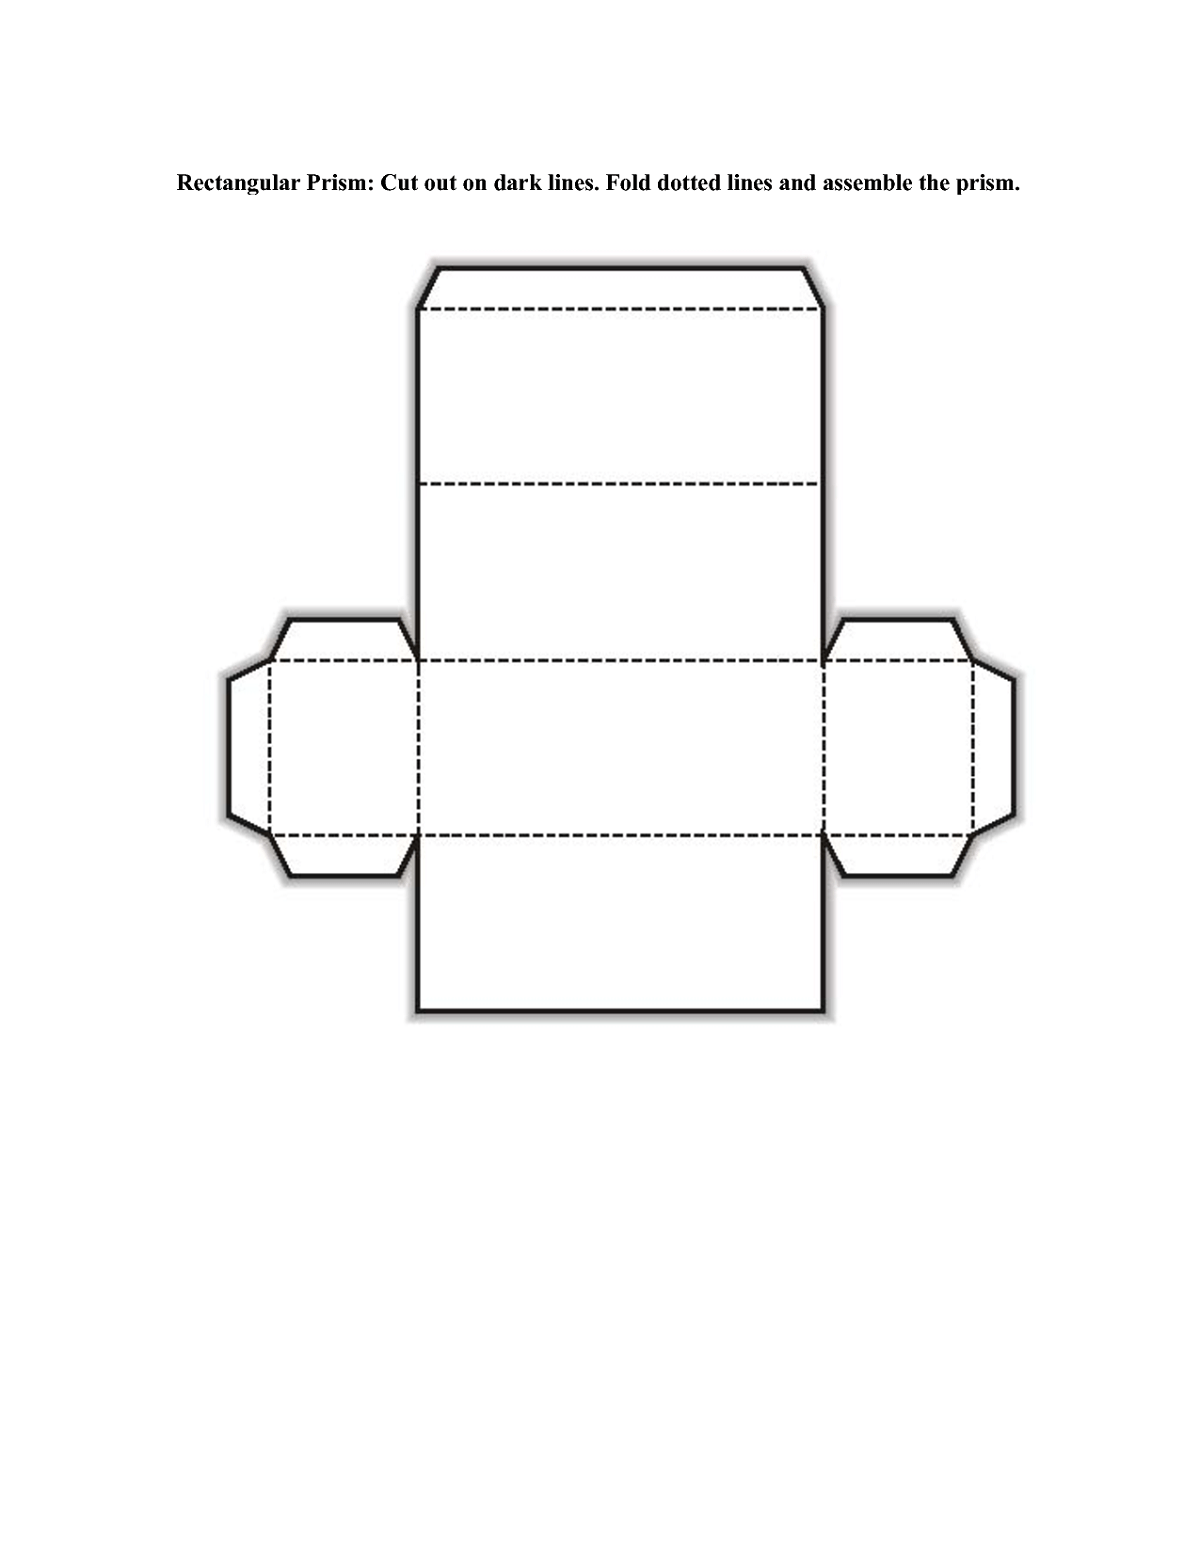 Rectangular Prism Net Page Learning Printable